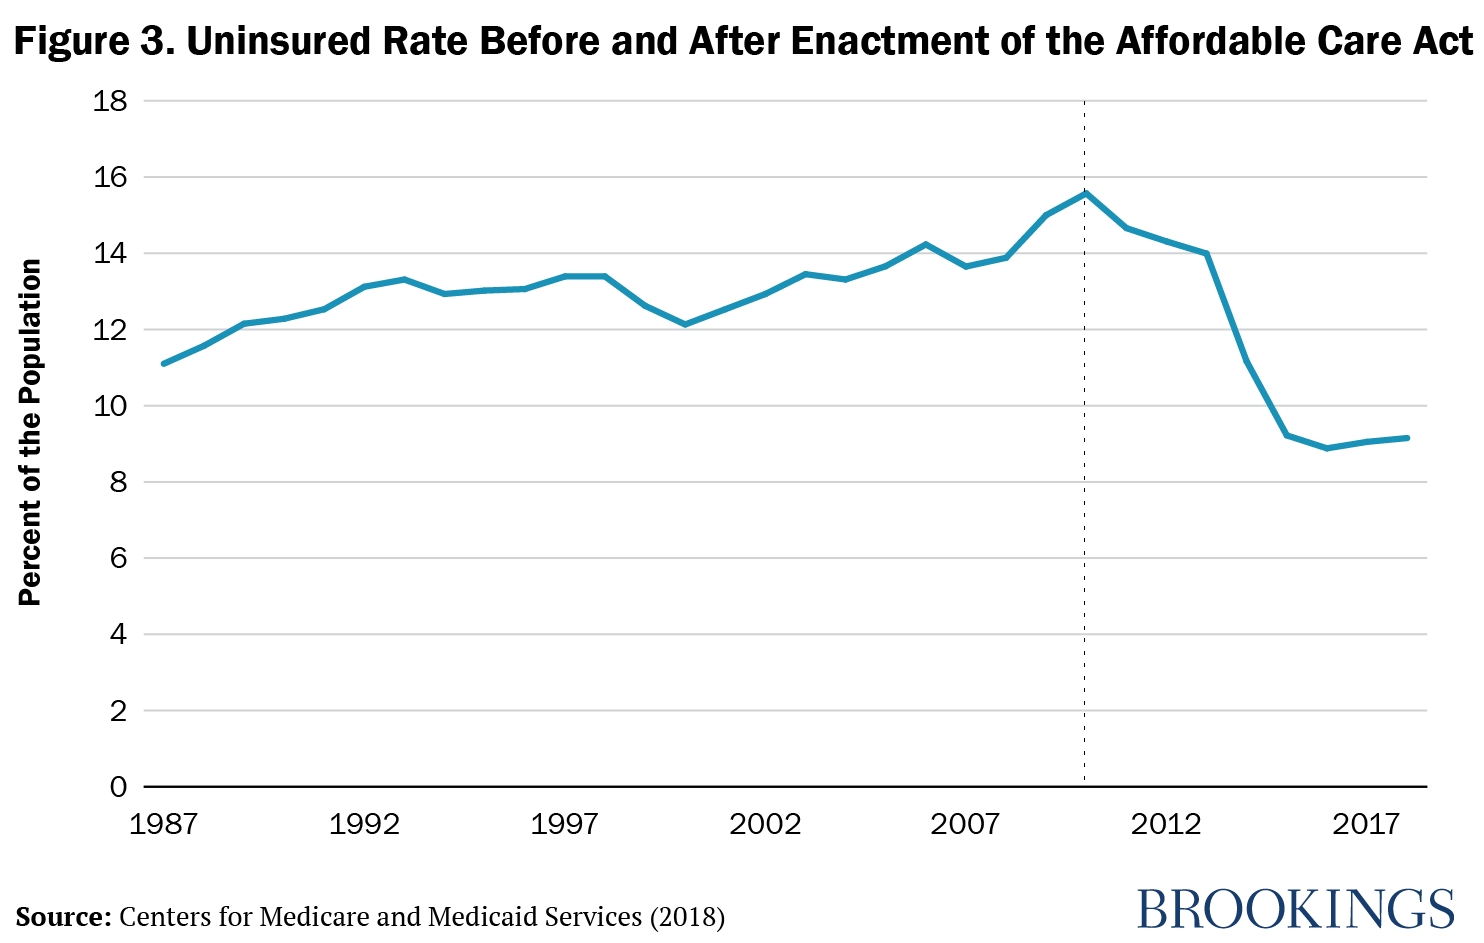 Figure 3. Uninsured Rate Before and After the Enactment of the Affordable Care Act